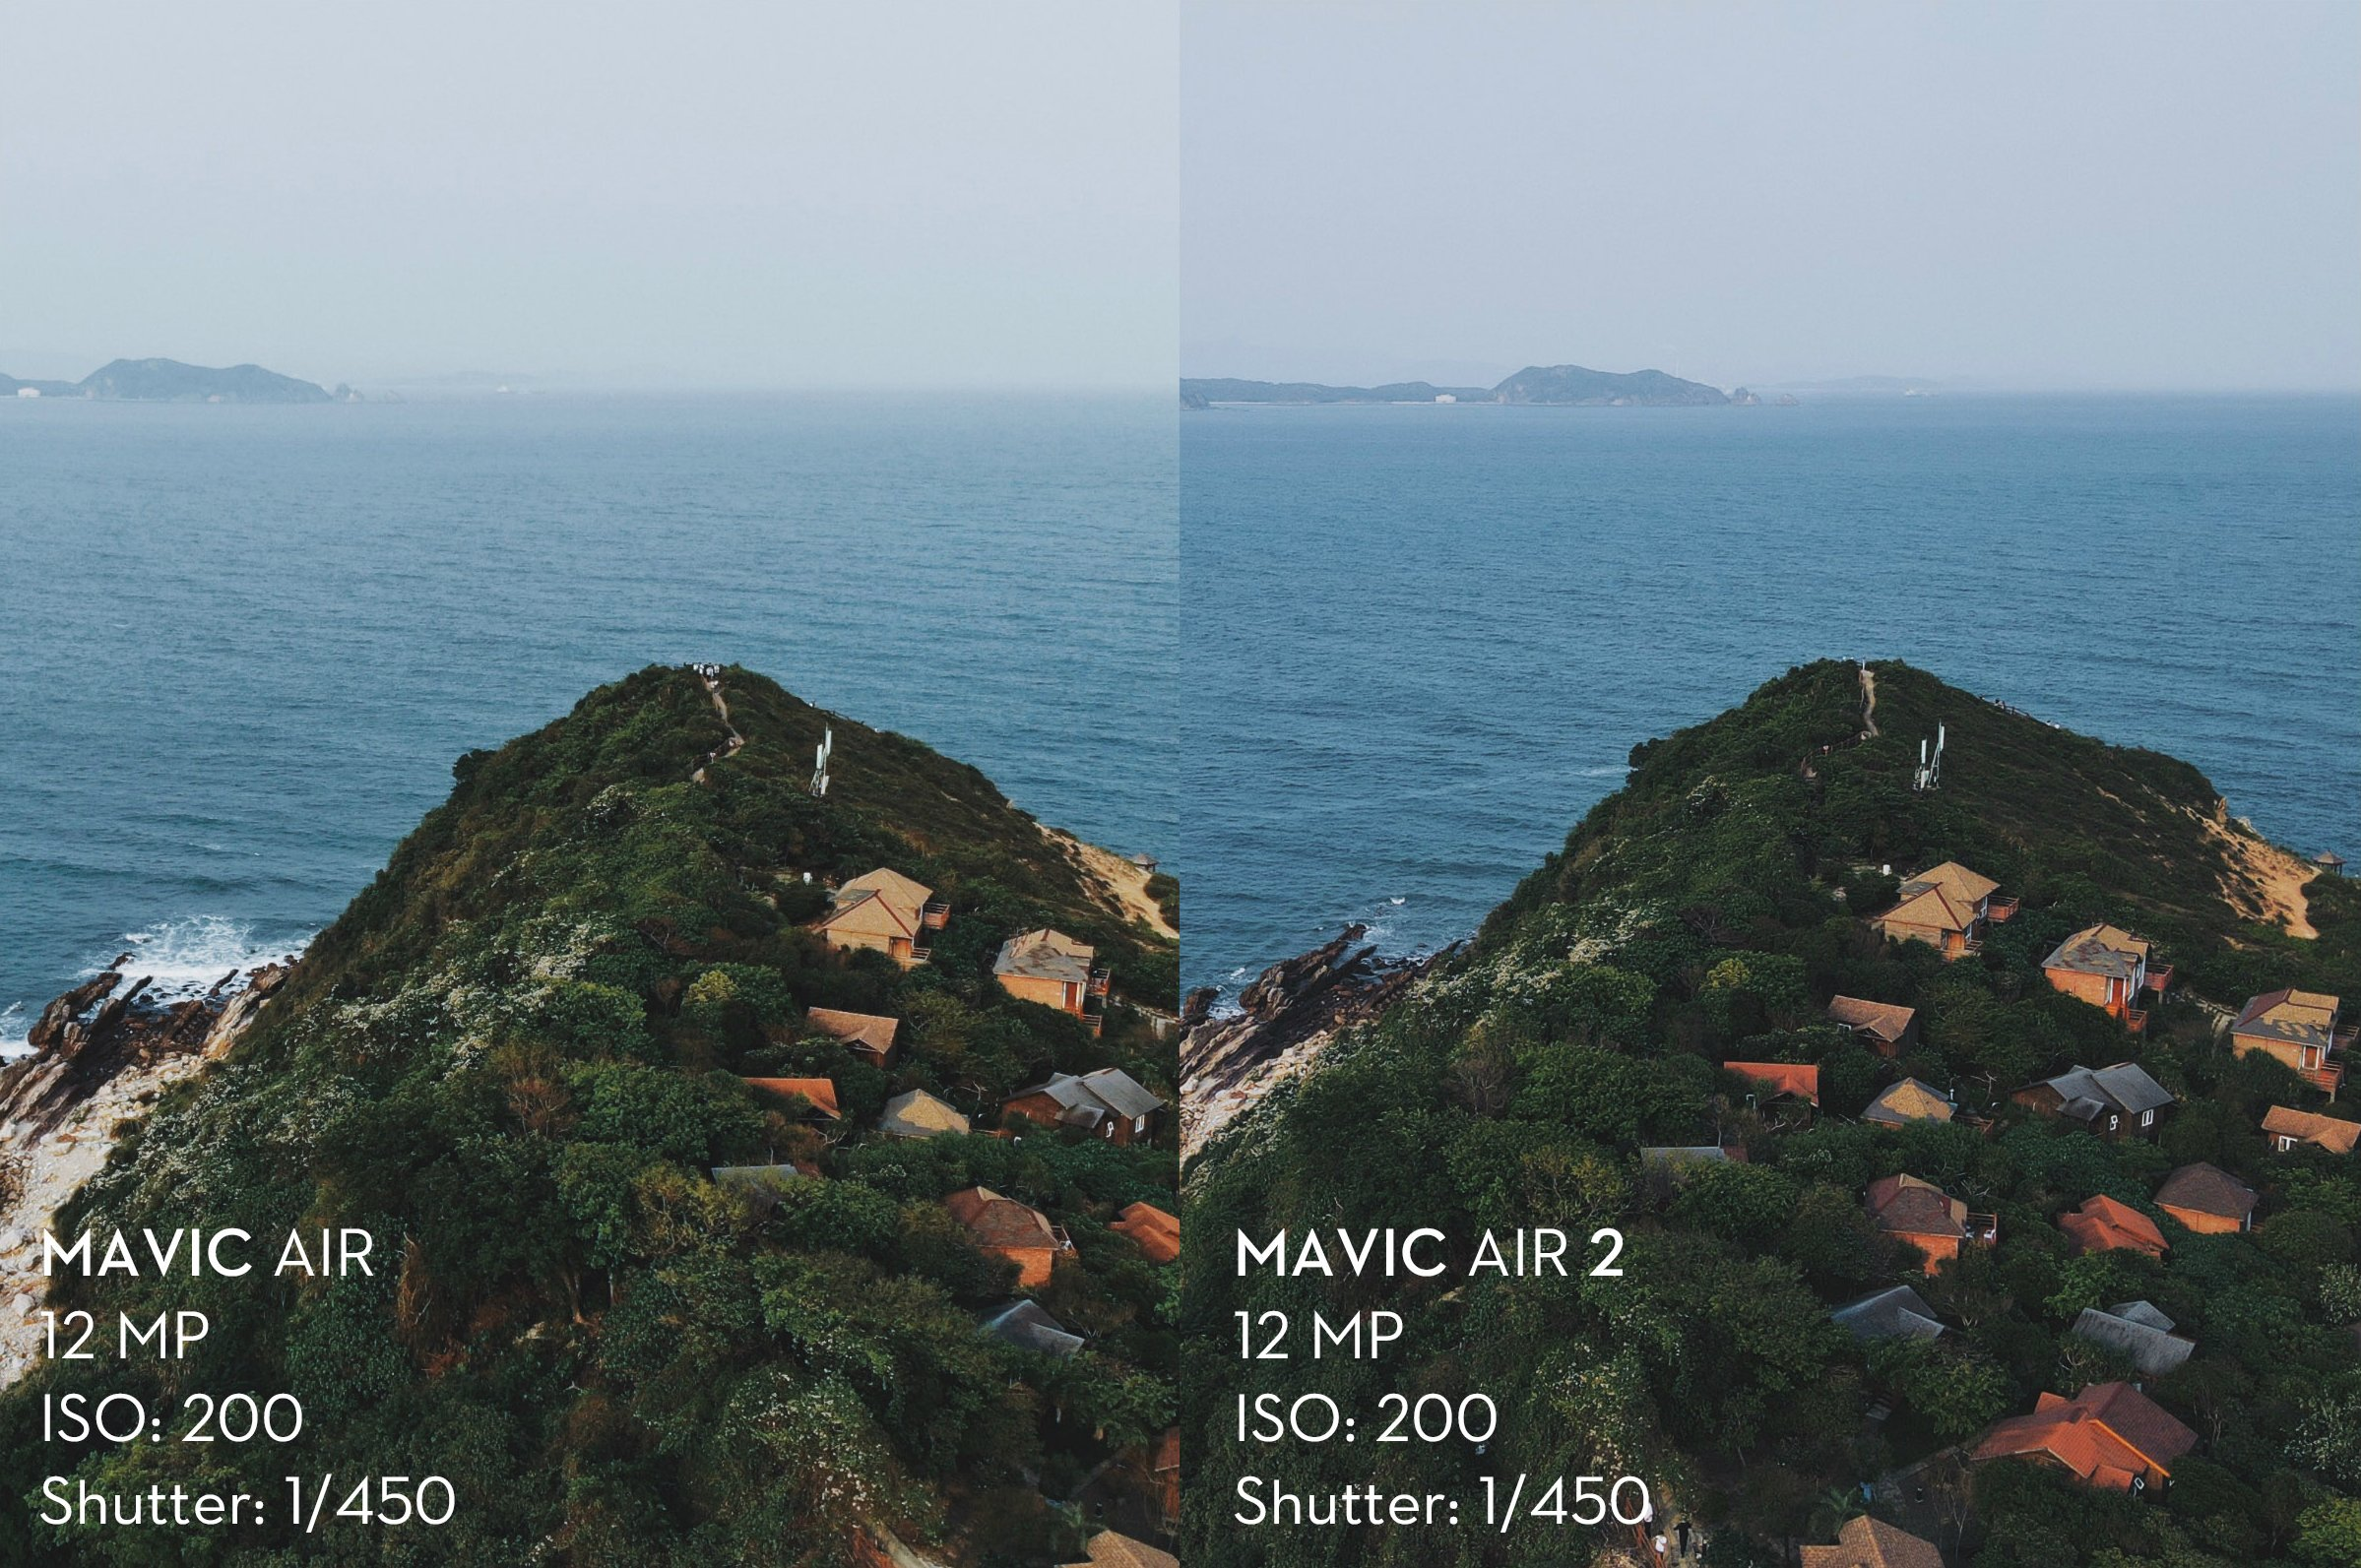 Mavic Air 2 vs Mavic Air